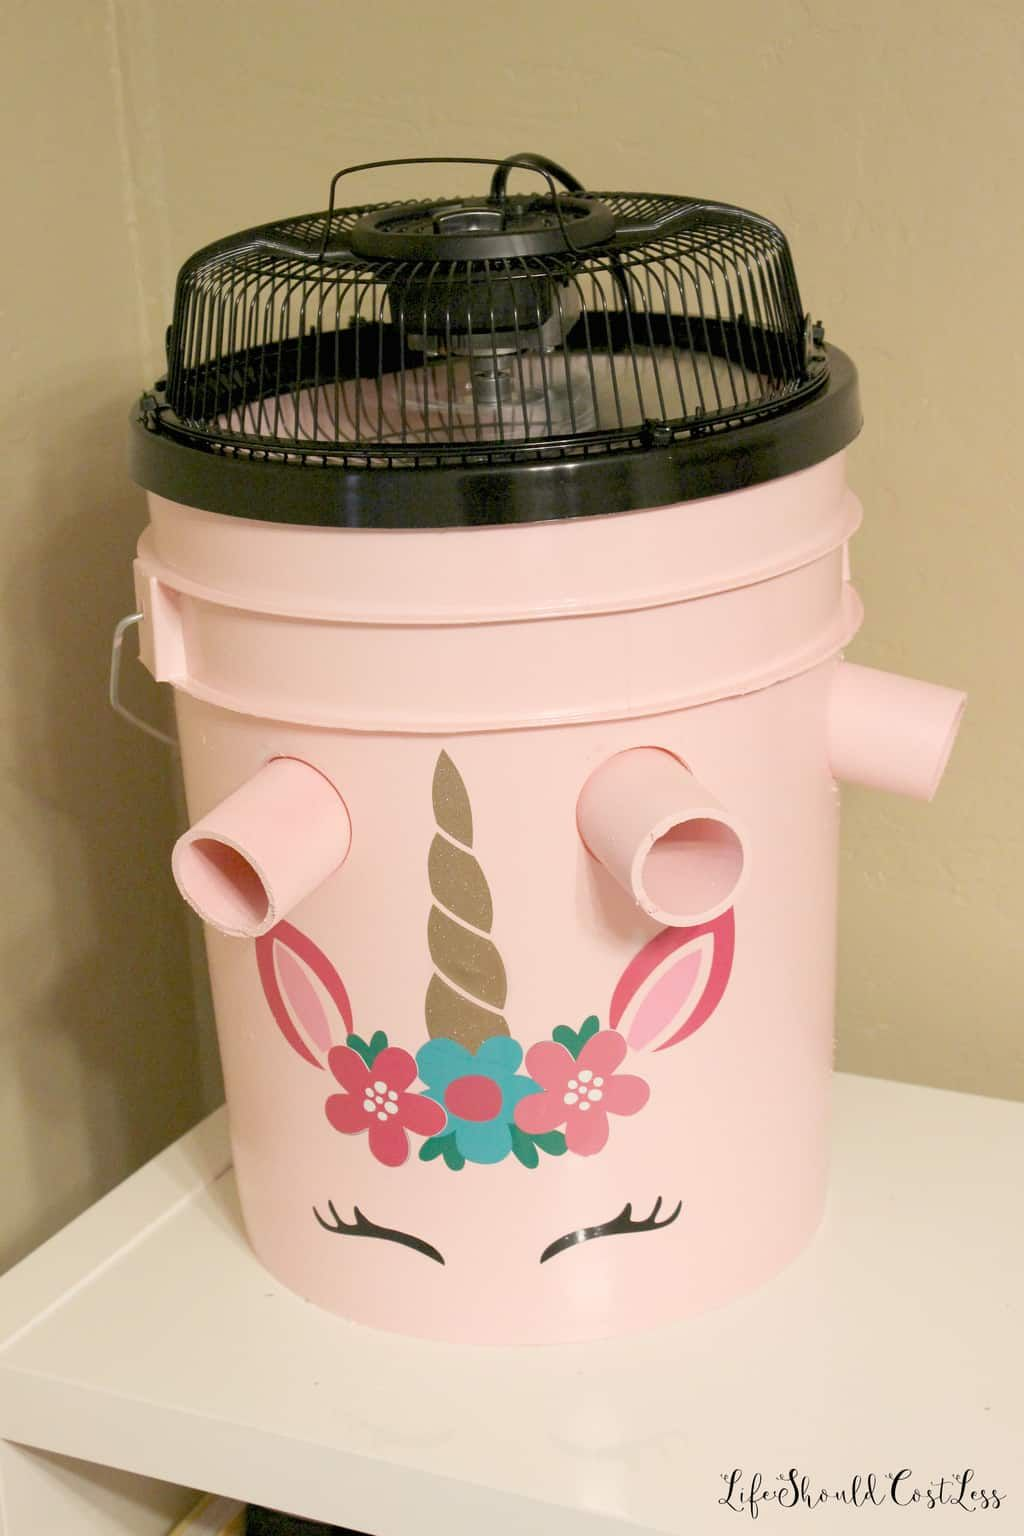 How To Make A Five Gallon Bucket A C Unit With Option To Make A Cute One Too Life Shou Bucket Air Conditioner Diy Air Conditioner Homemade Air Conditioner